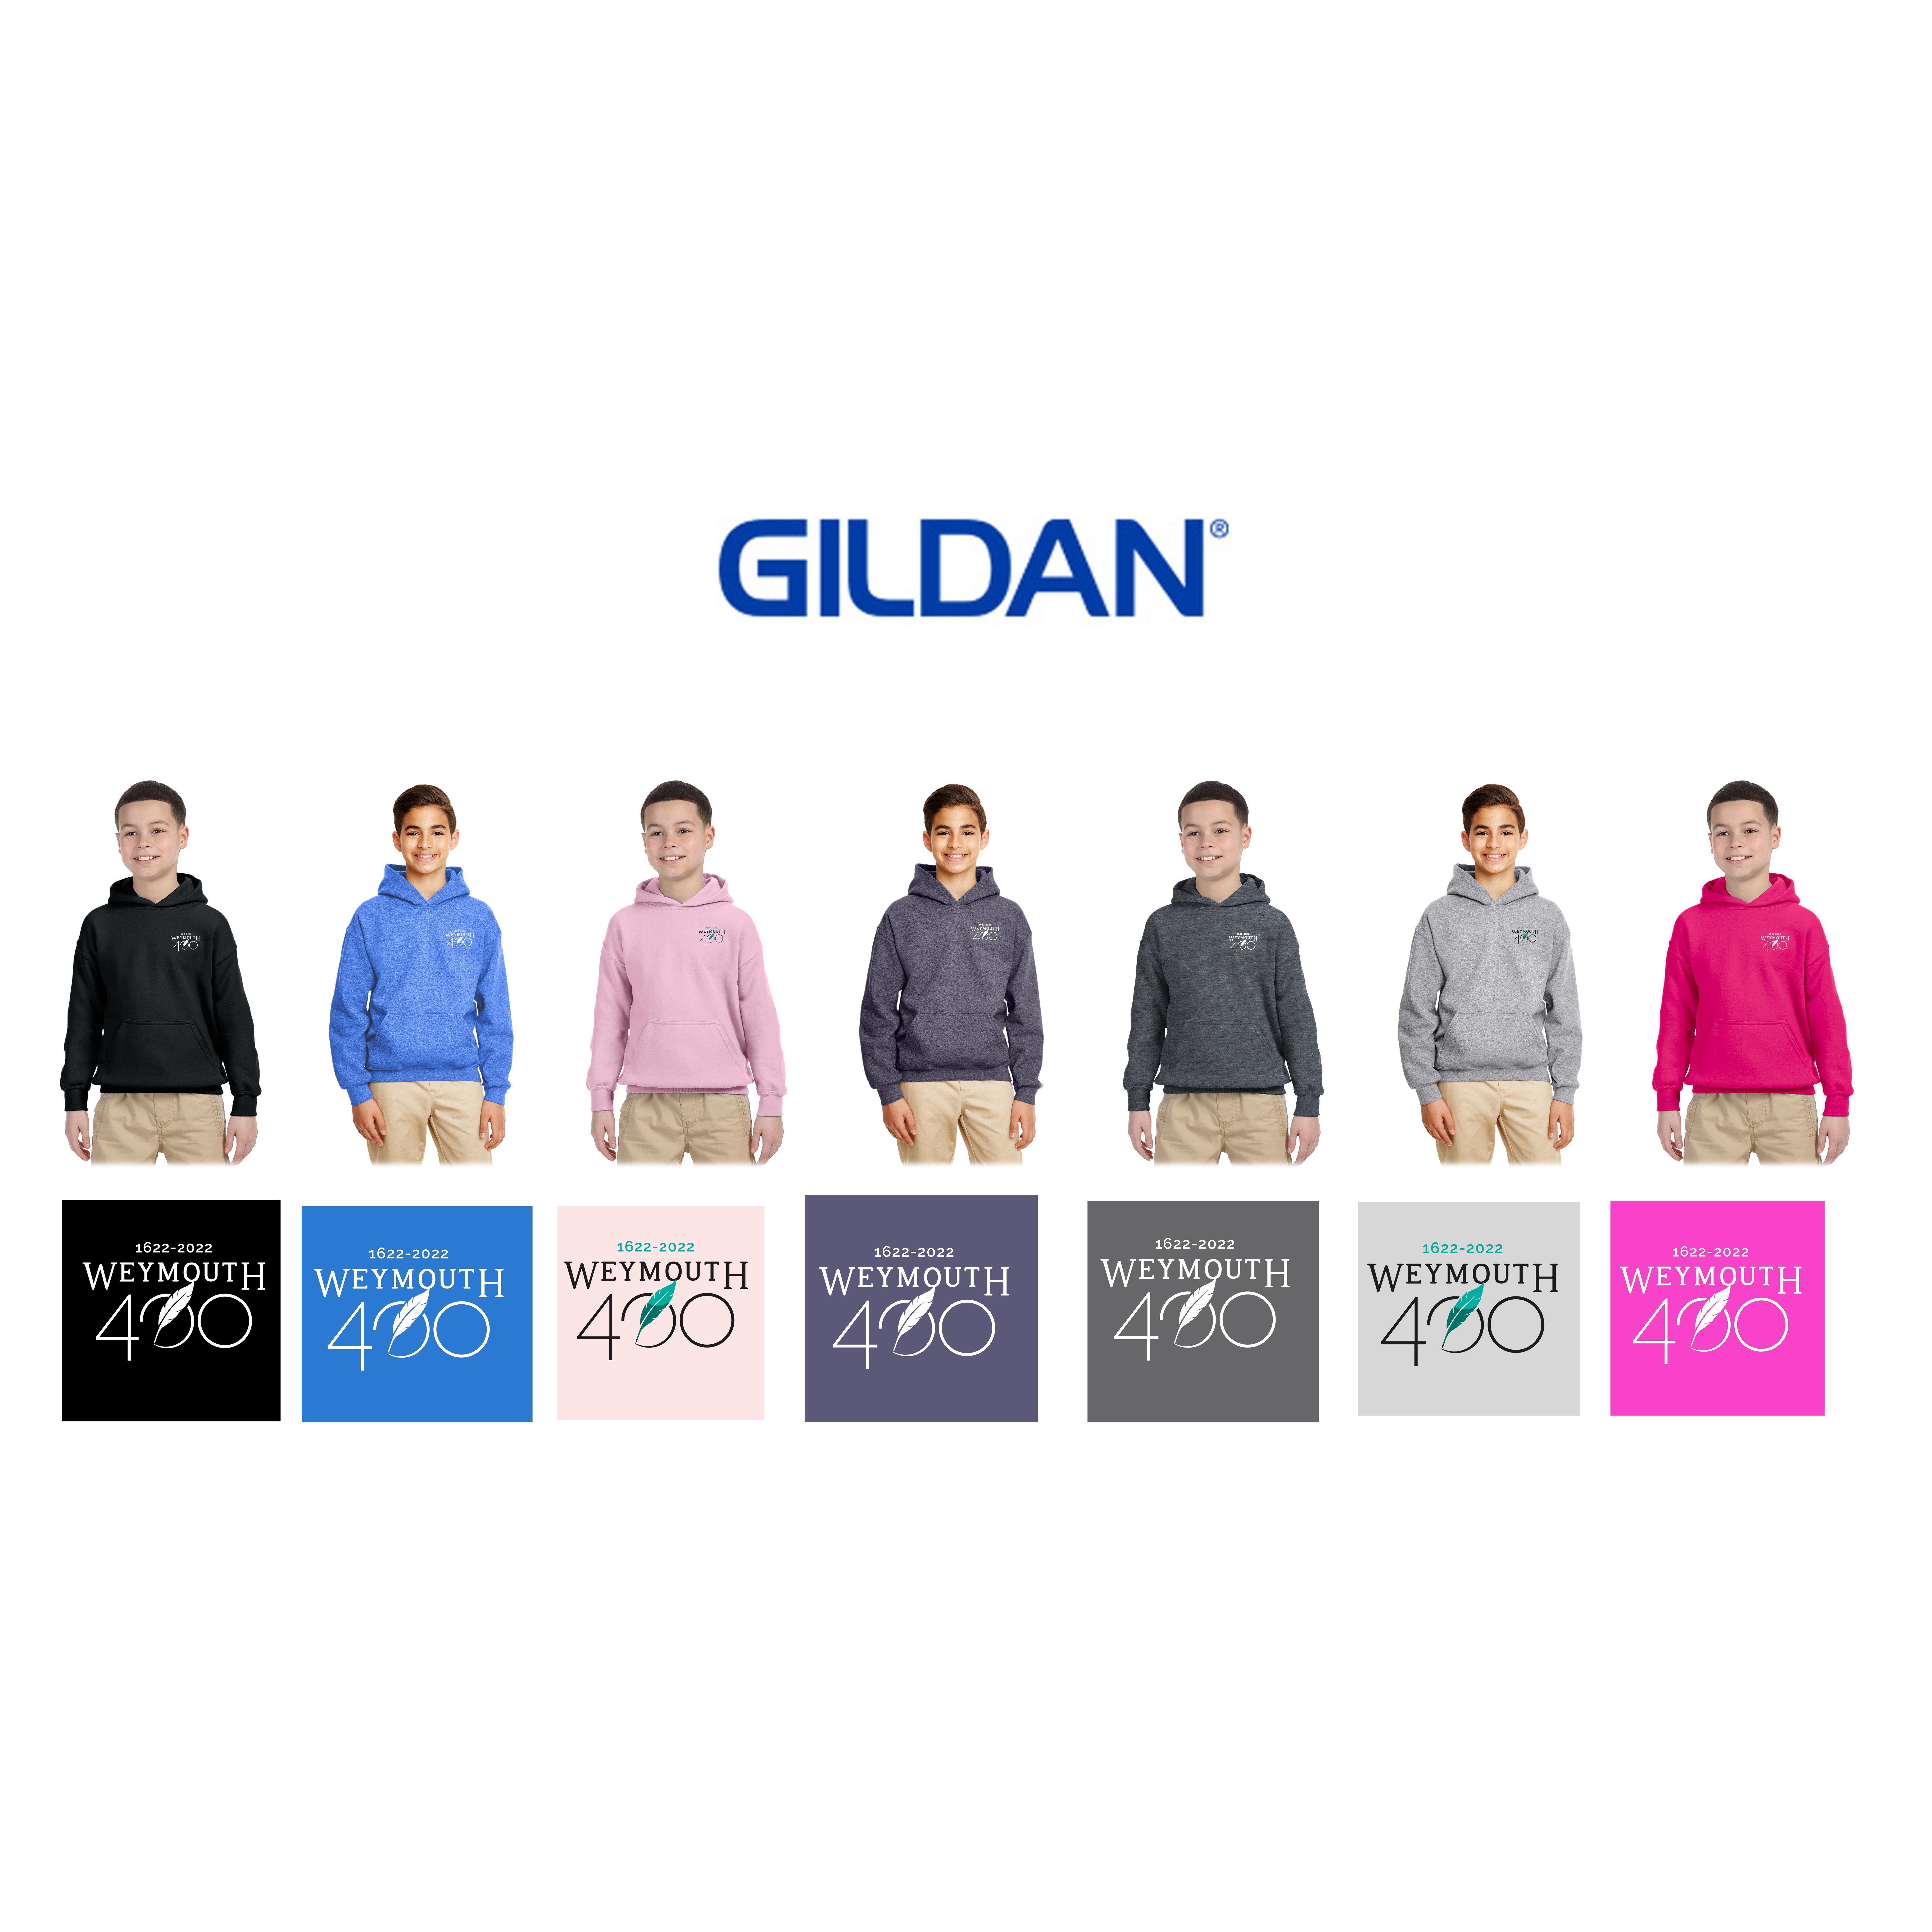 Weymouth 400 Gildan Youth Heavy Blend™ 8 oz., 50/50 Hooded Pullover, Embroidered